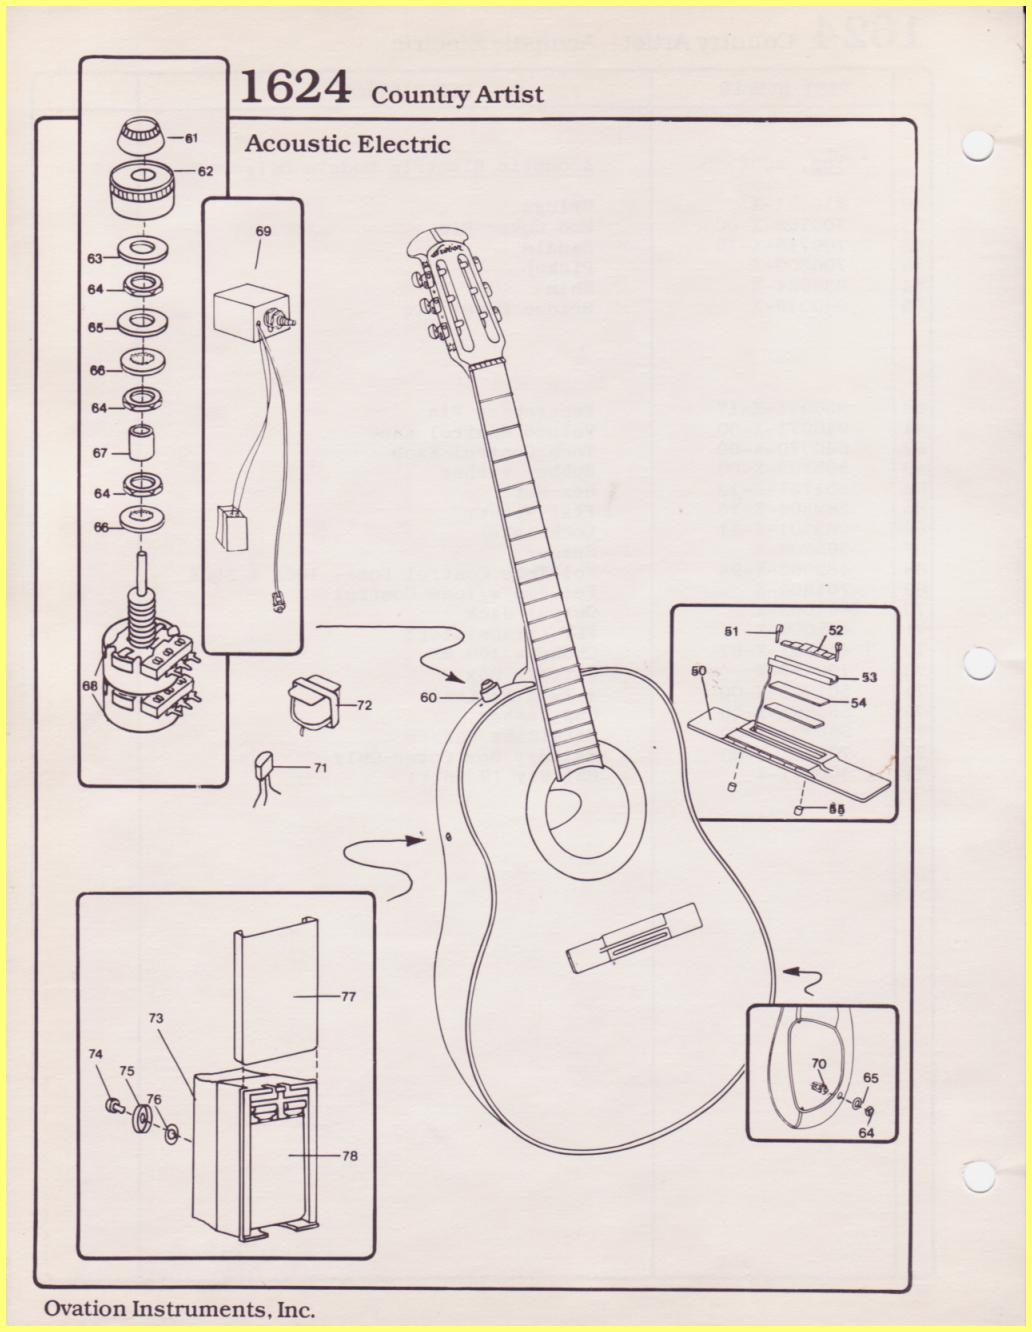 WRG-7489] Acoustic Electric Guitar Wiring Diagram on